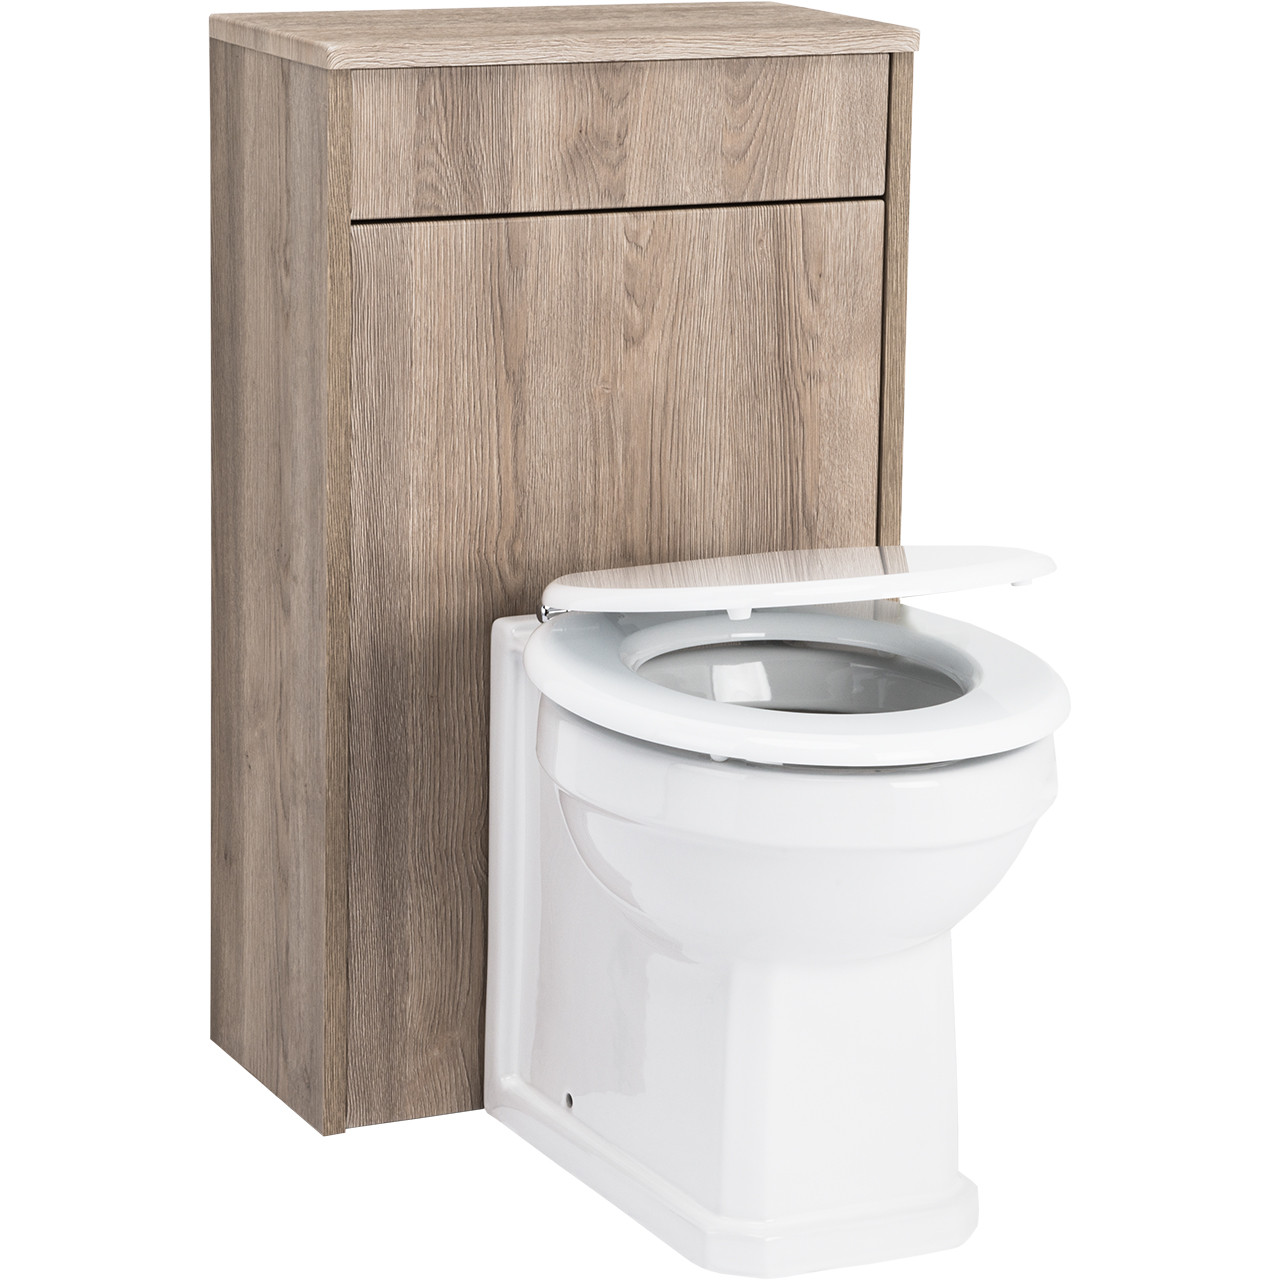 Windsor Traditional Oak 500 WC Unit